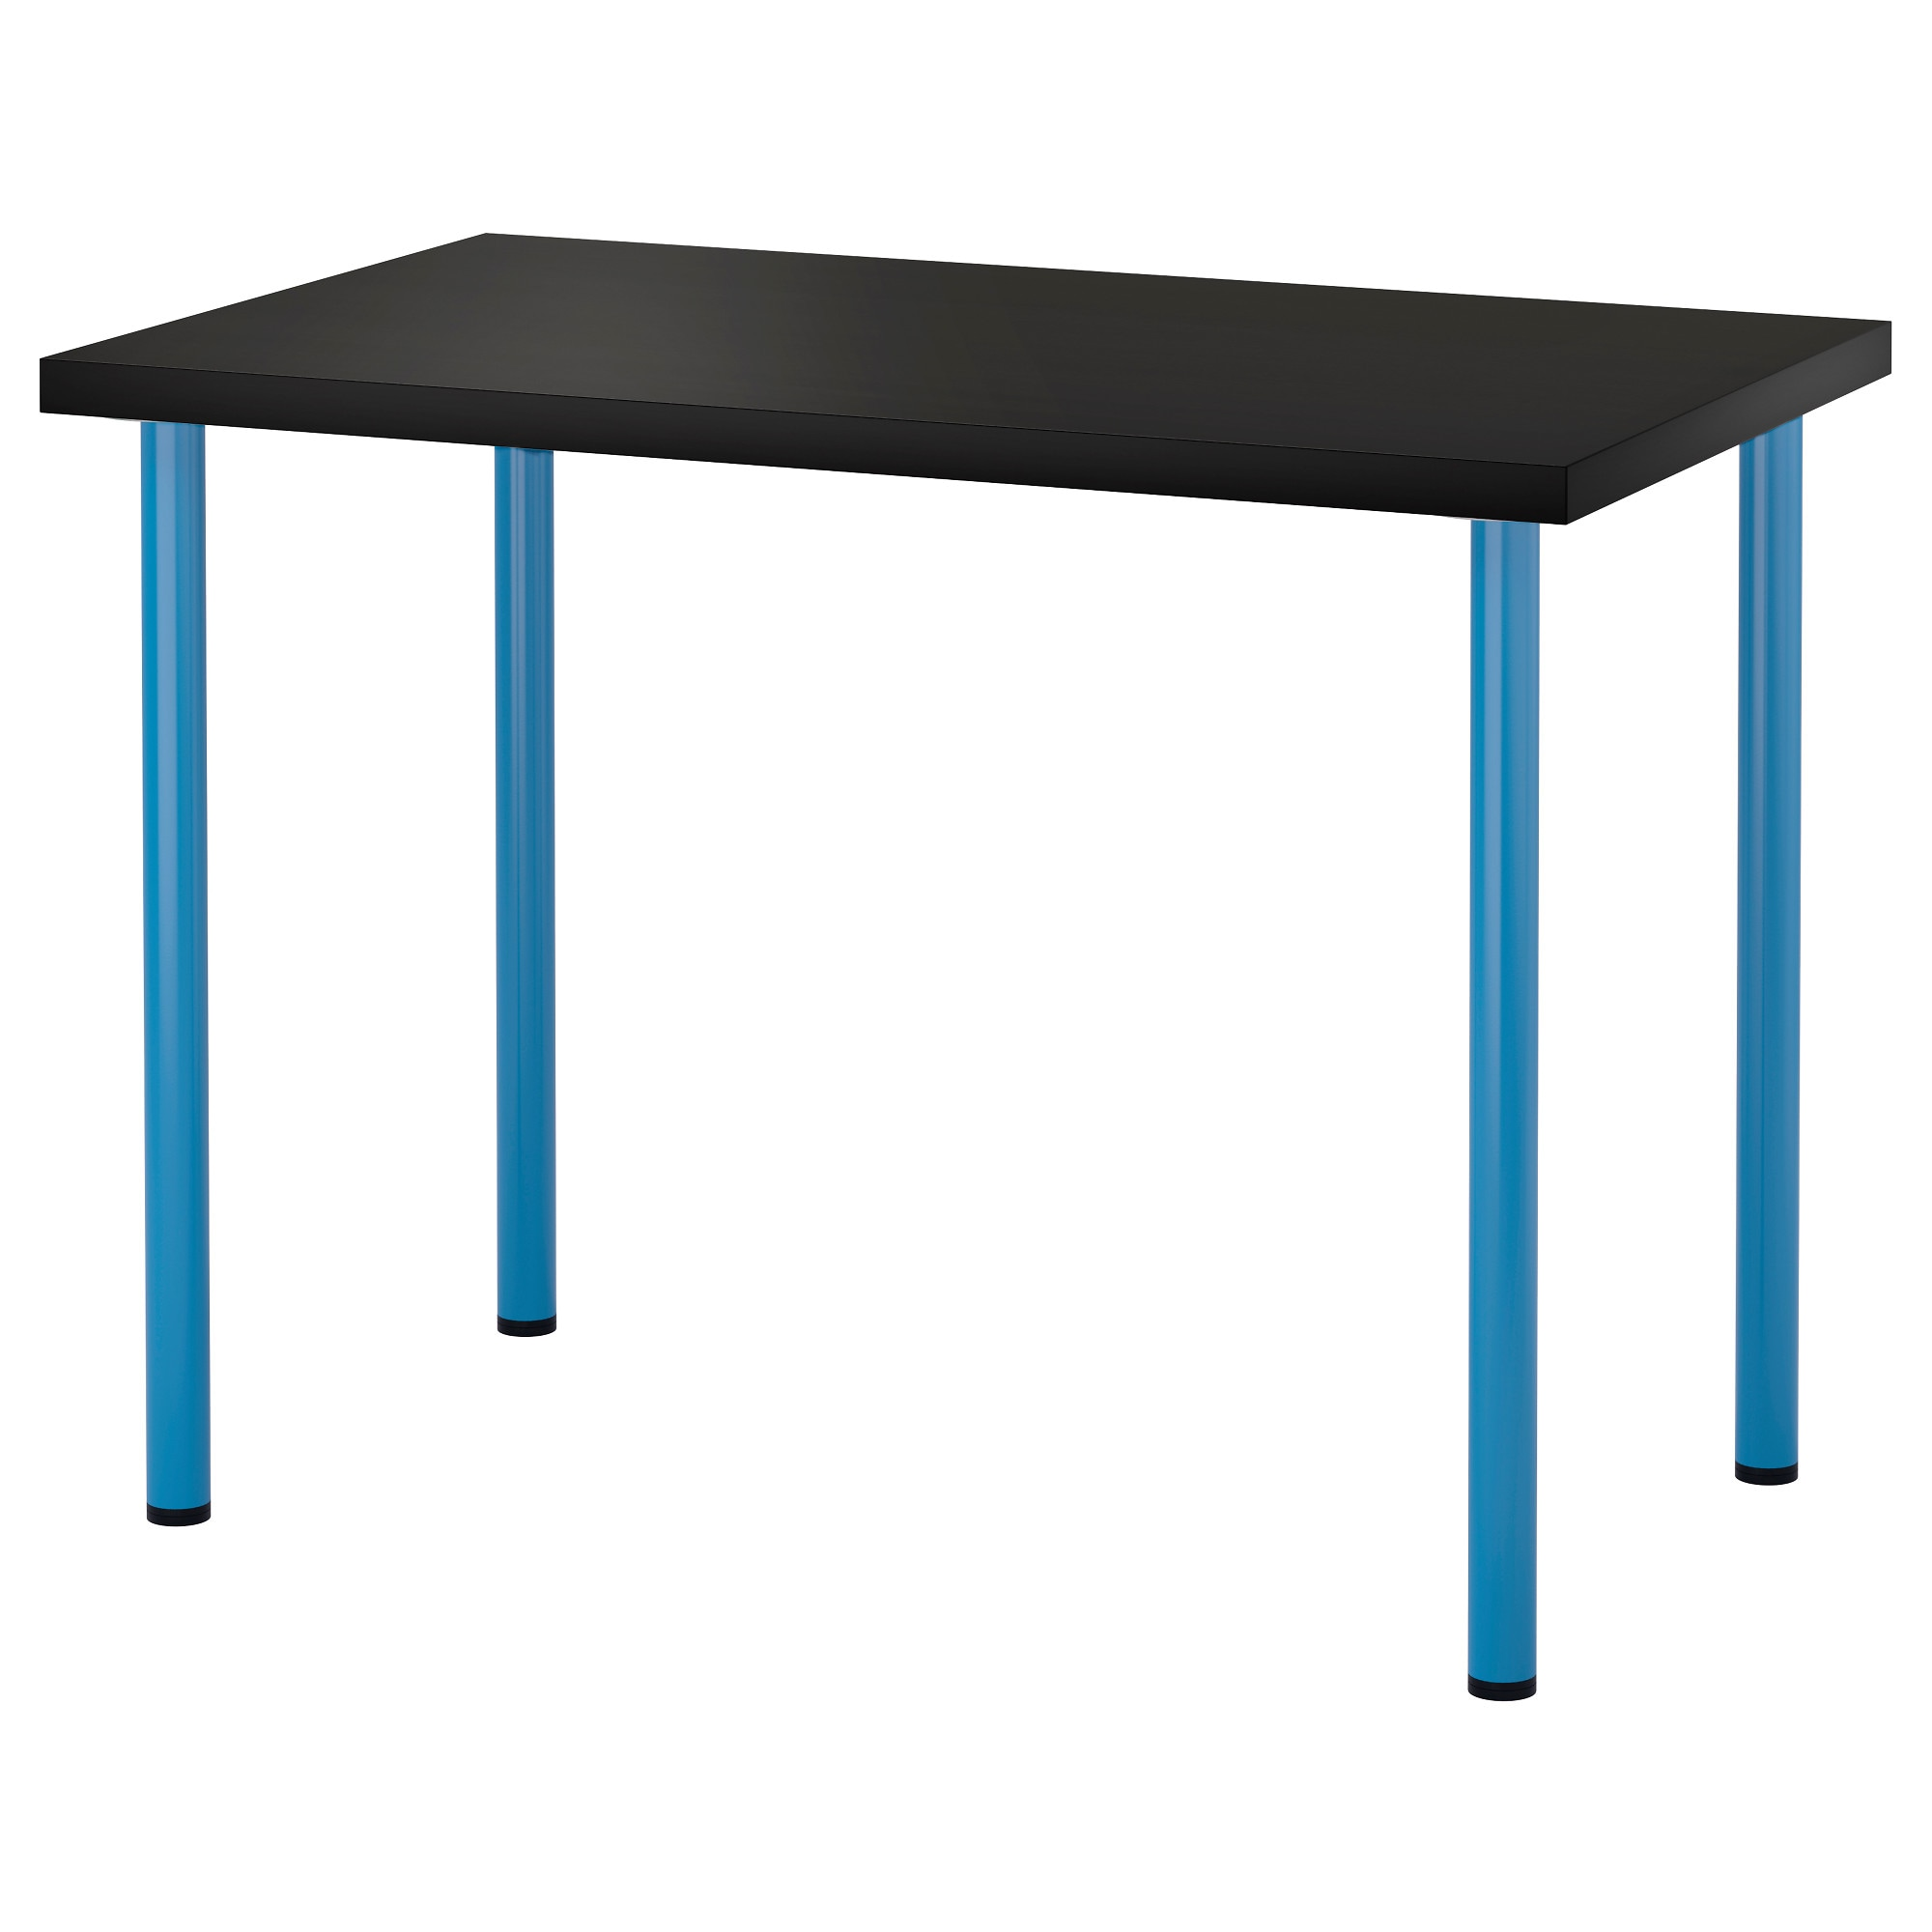 LINNMON / ADILS Table   Black Brown/blue   IKEA